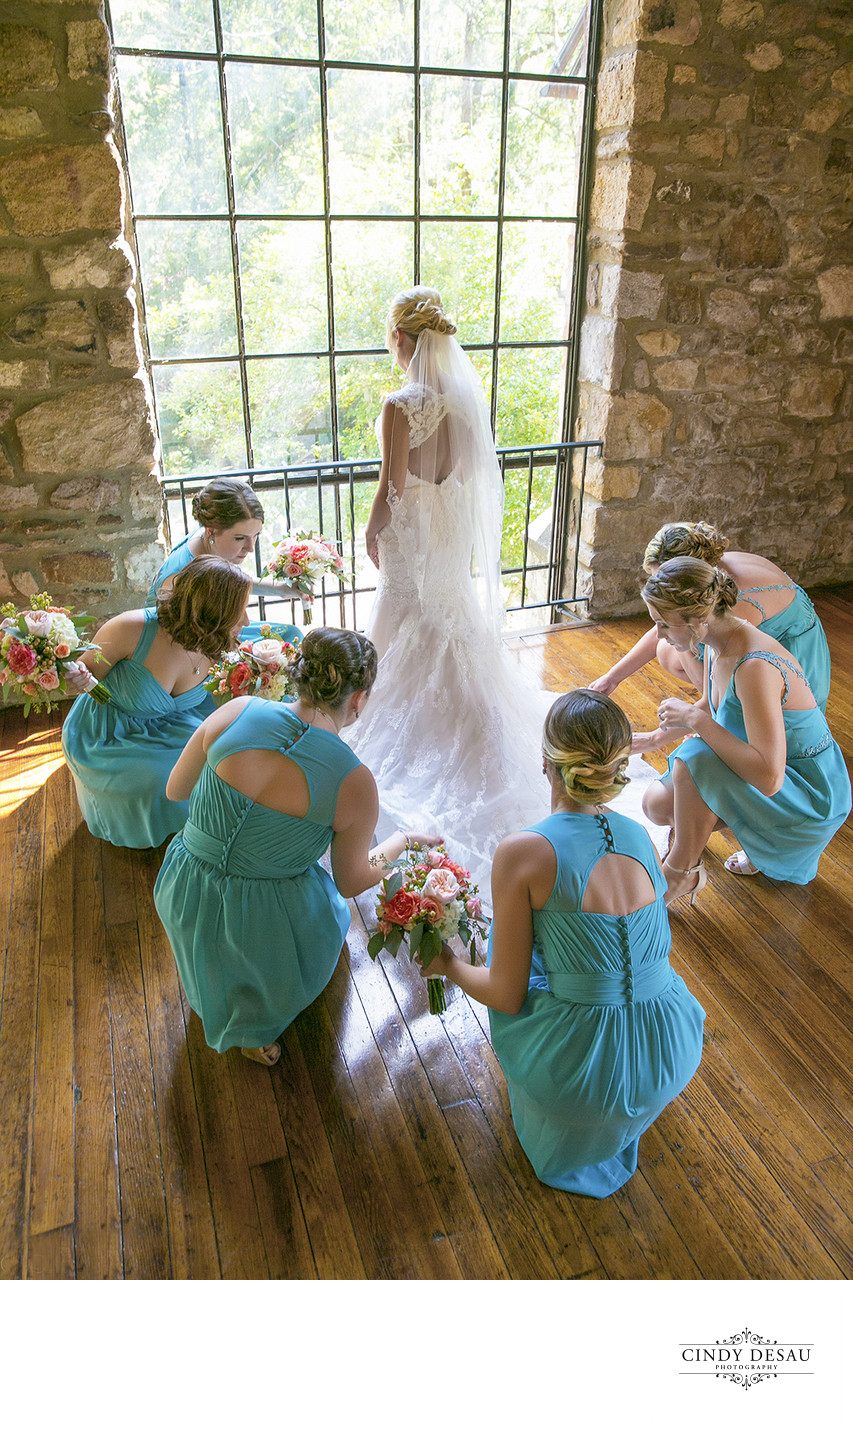 Beautiful Candid Moment of Bride with Her Bridesmaids